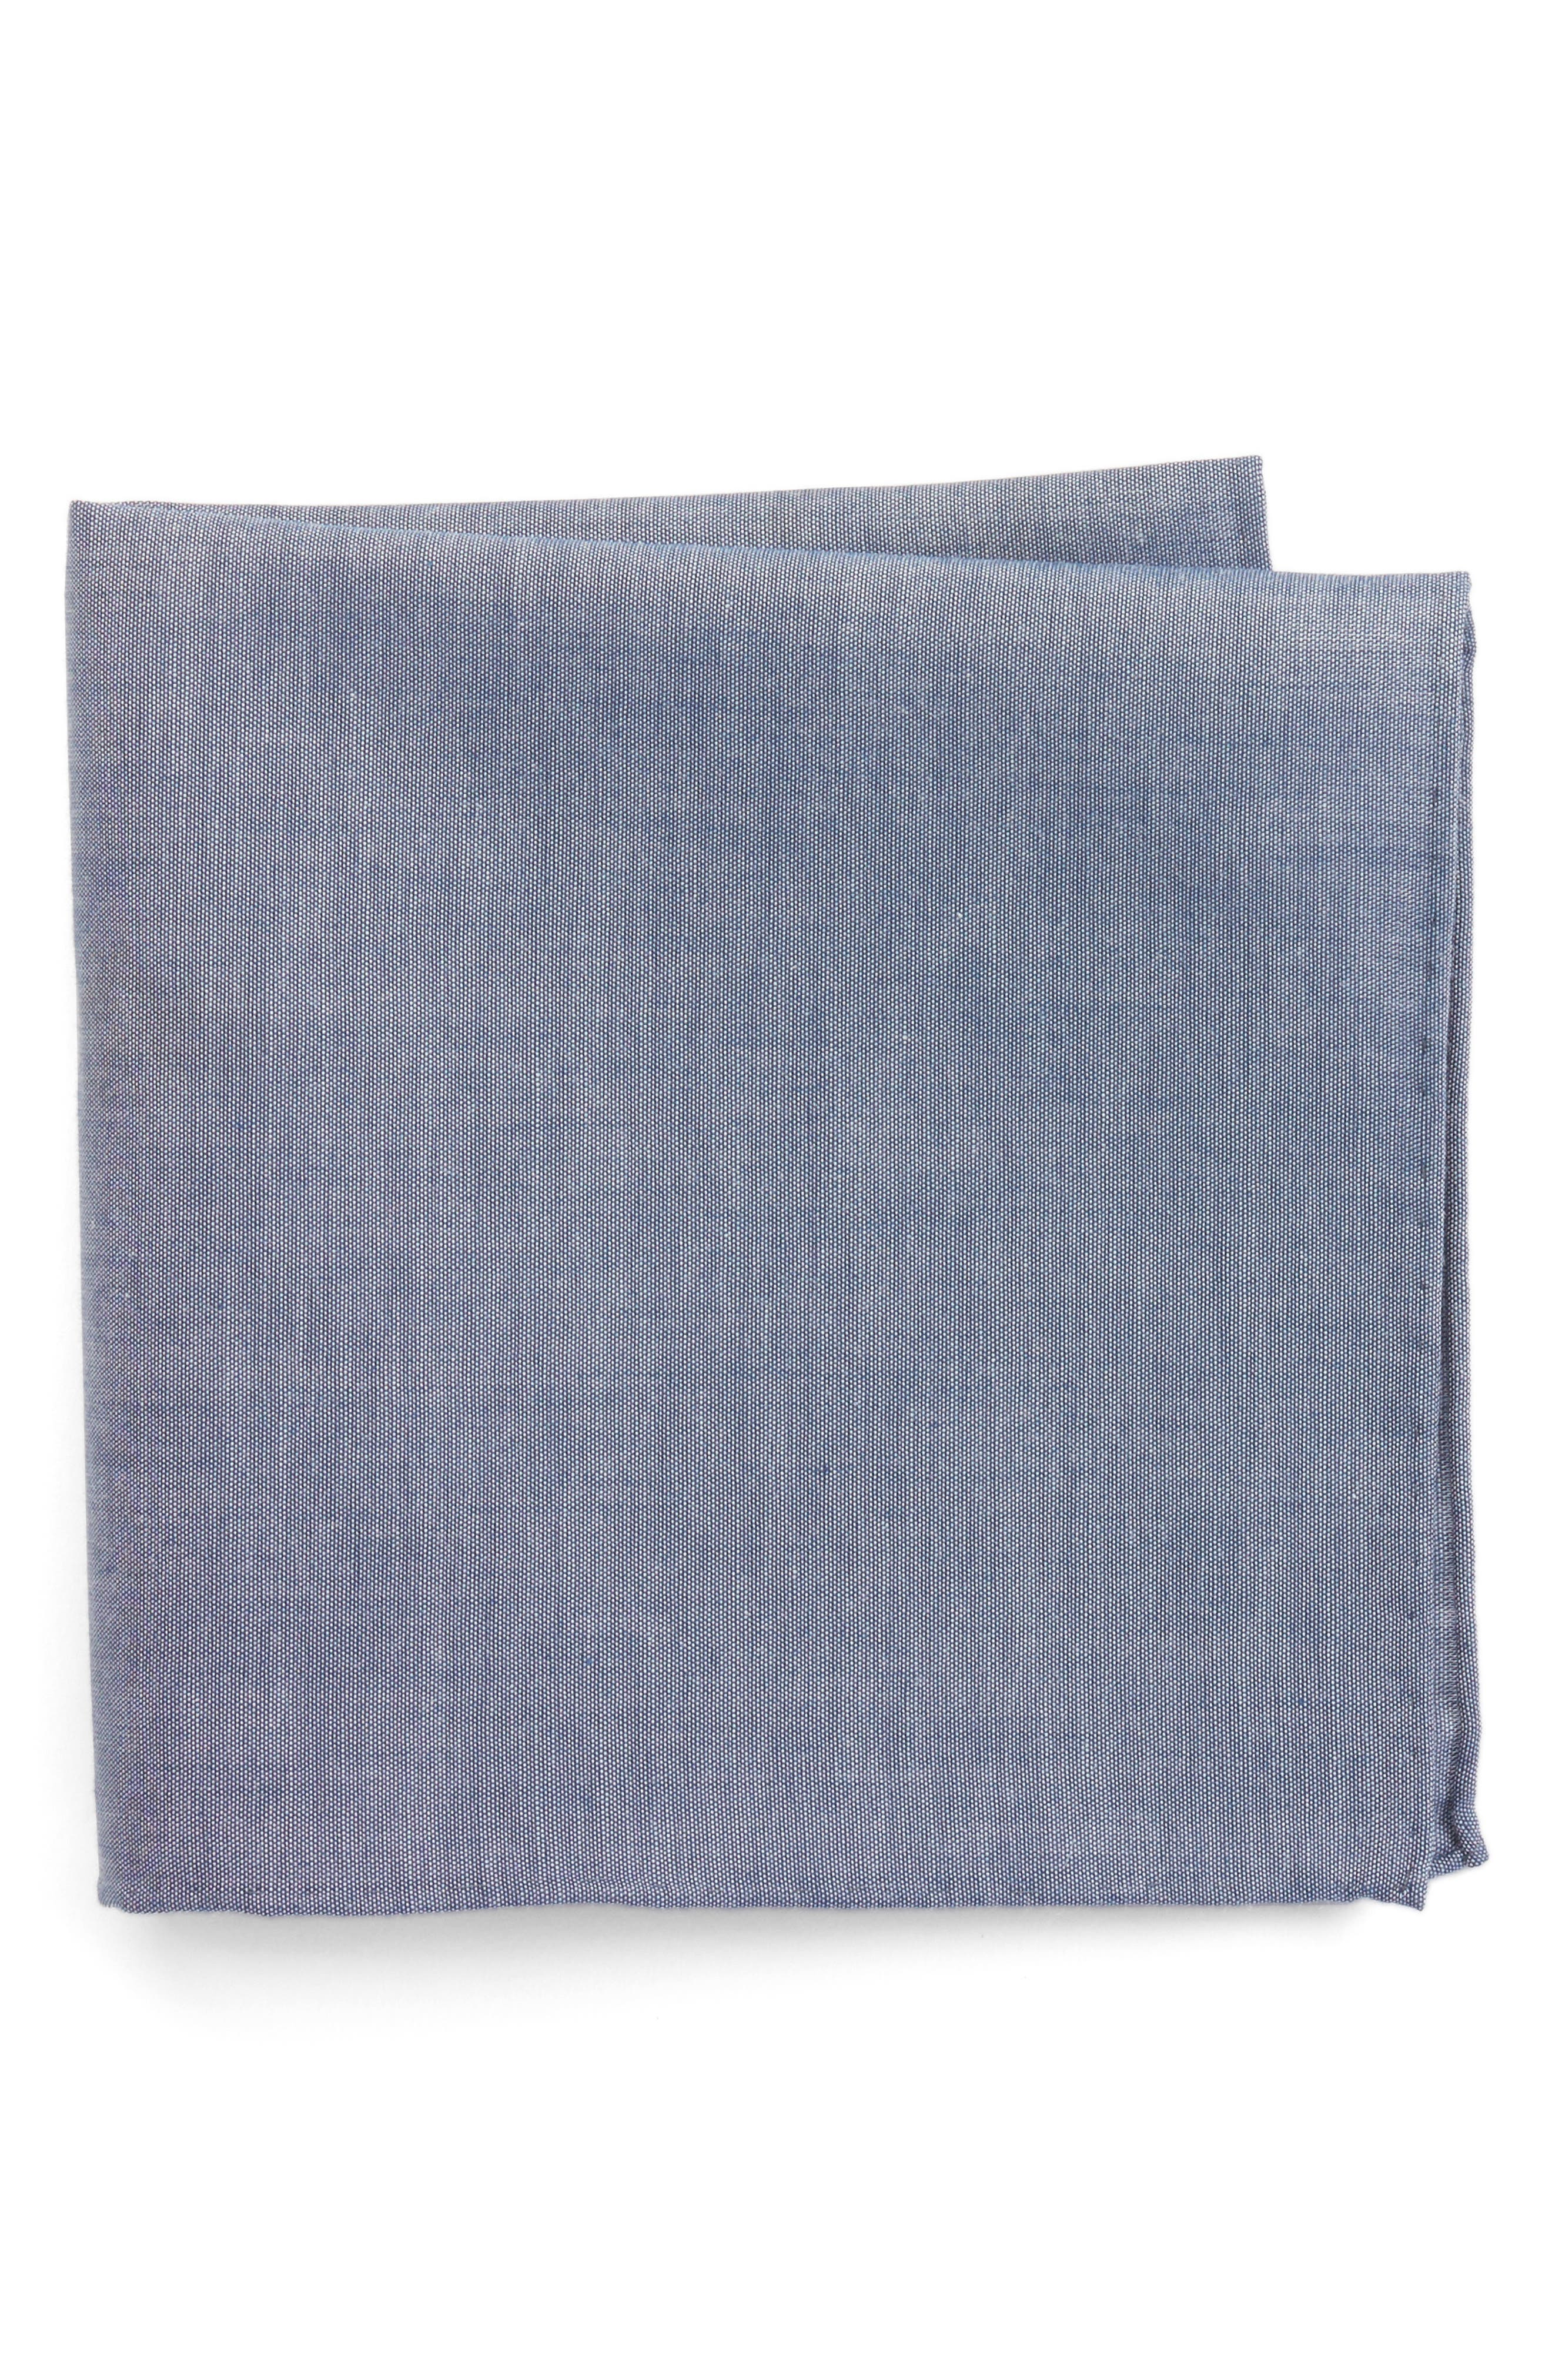 Chambray CottonPocket Square,                         Main,                         color, Warm Blue